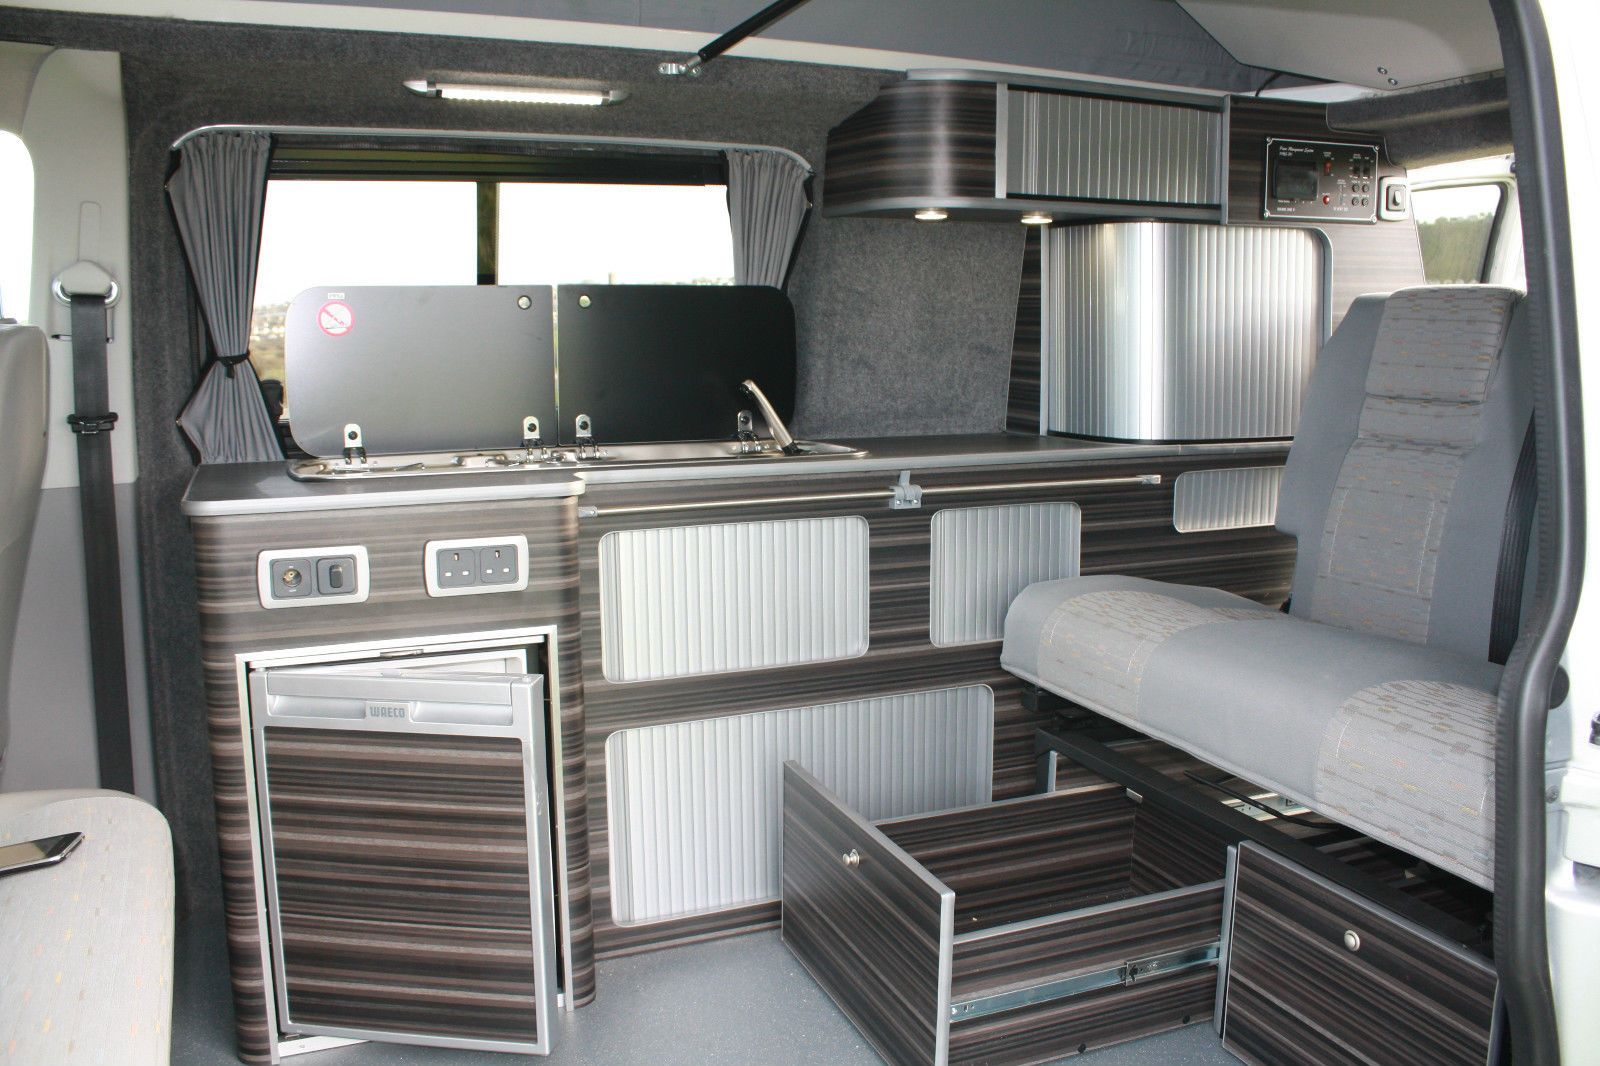 vw t5 transporter renault trafic mercedes vito camper. Black Bedroom Furniture Sets. Home Design Ideas